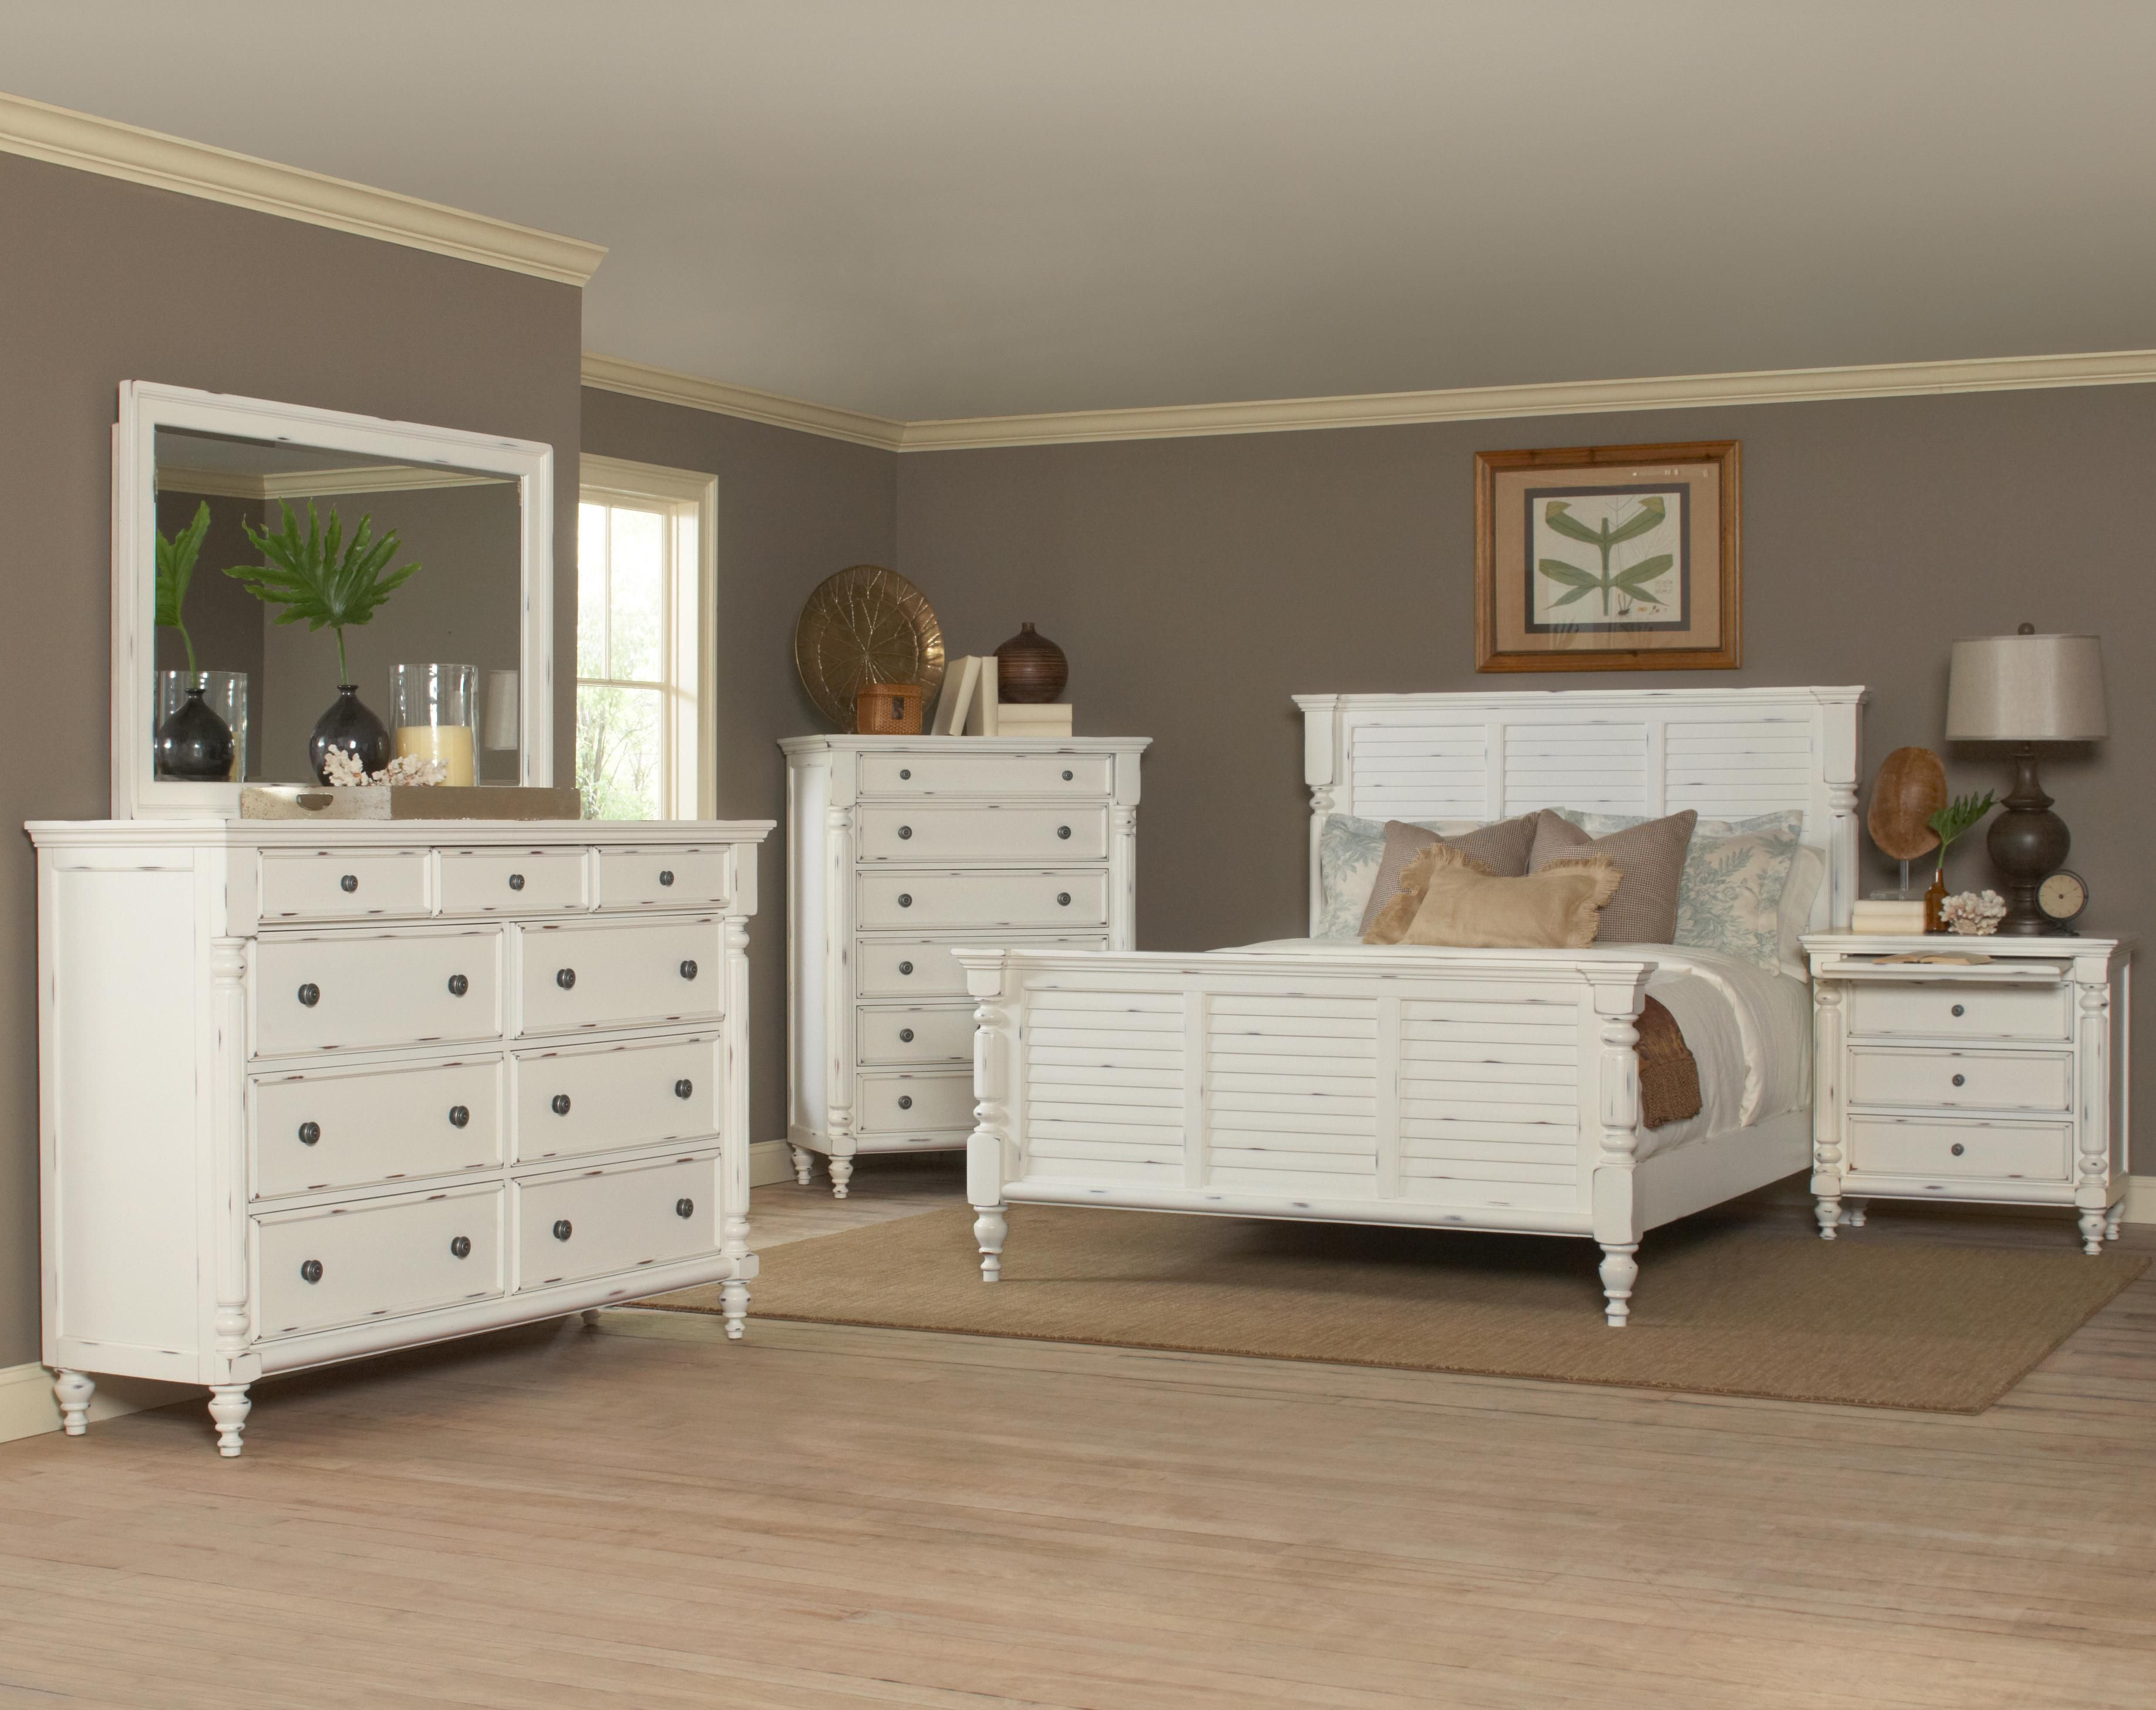 West Keys 00 022 By New Classic Ivan Smith Furniture New